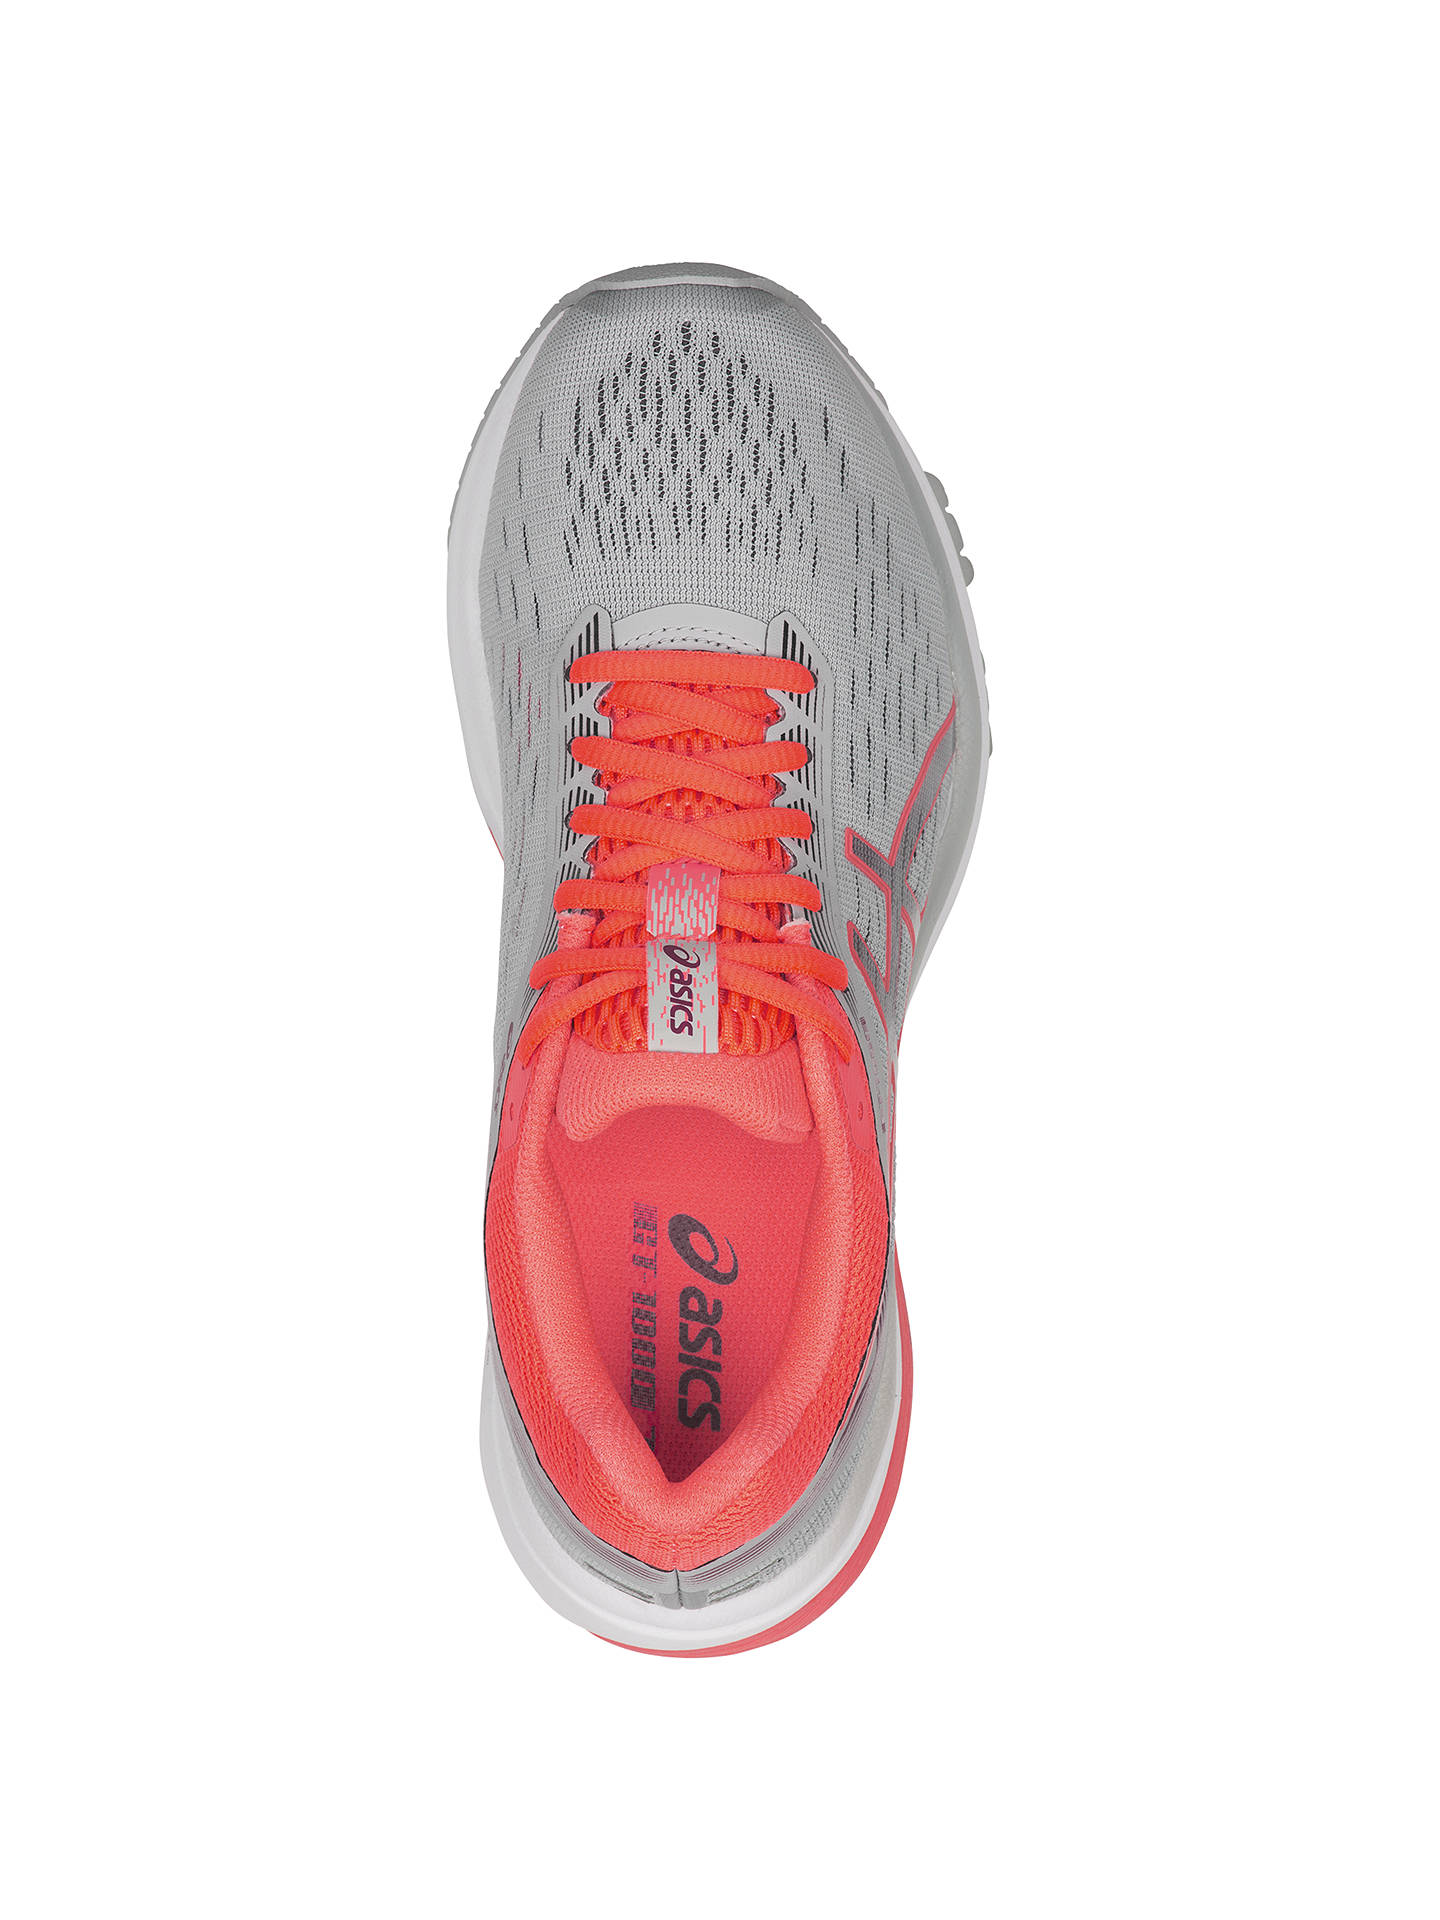 Buy ASICS GT-1000 7 Women's Running Shoes, Mid Grey/Flash Coral, 5.5 Online at johnlewis.com